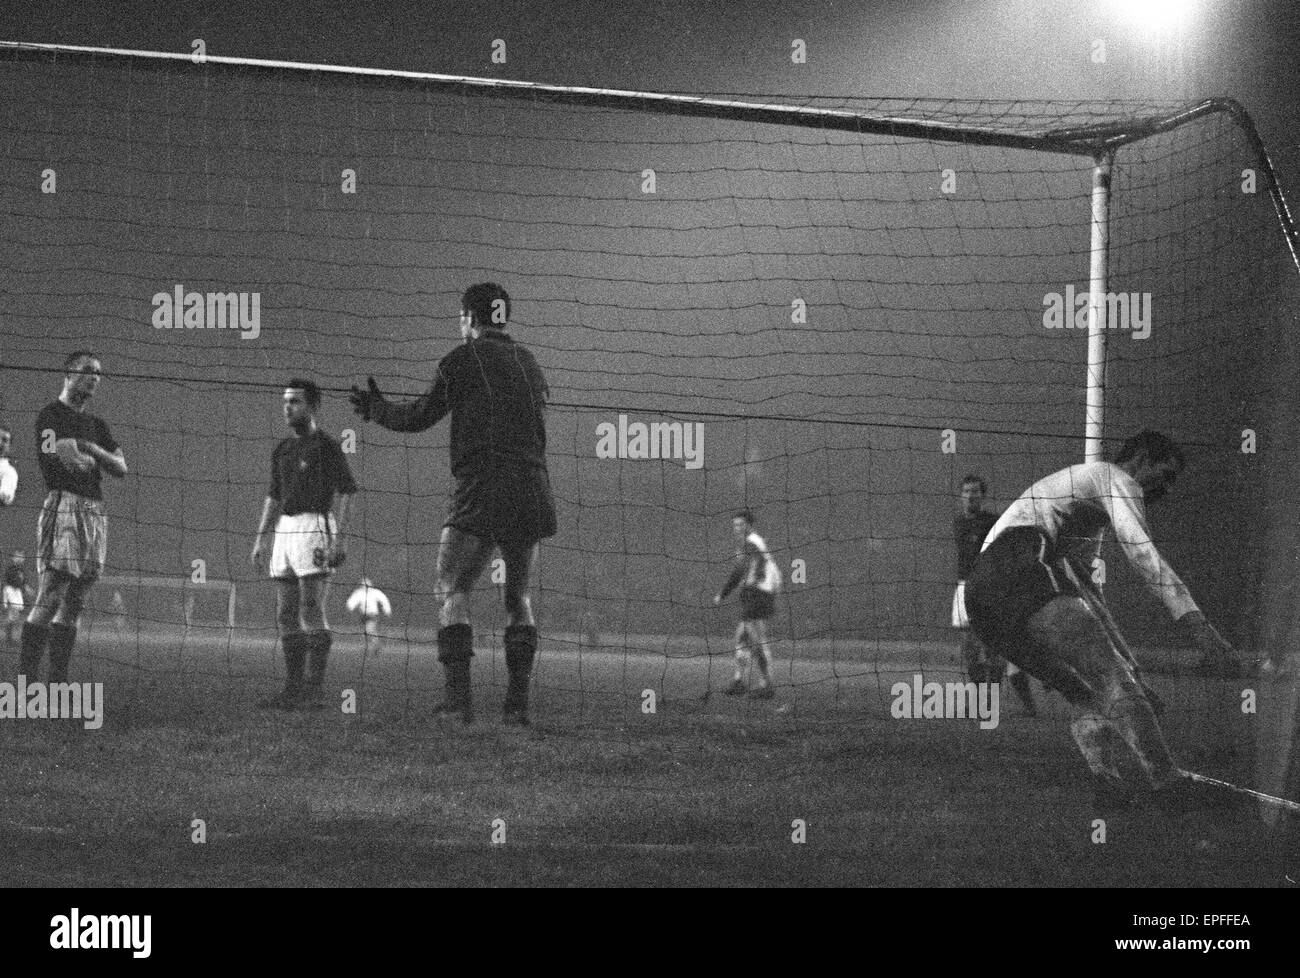 Inter Cities Fairs Cup Semi Final Second Leg match at Stamford ...